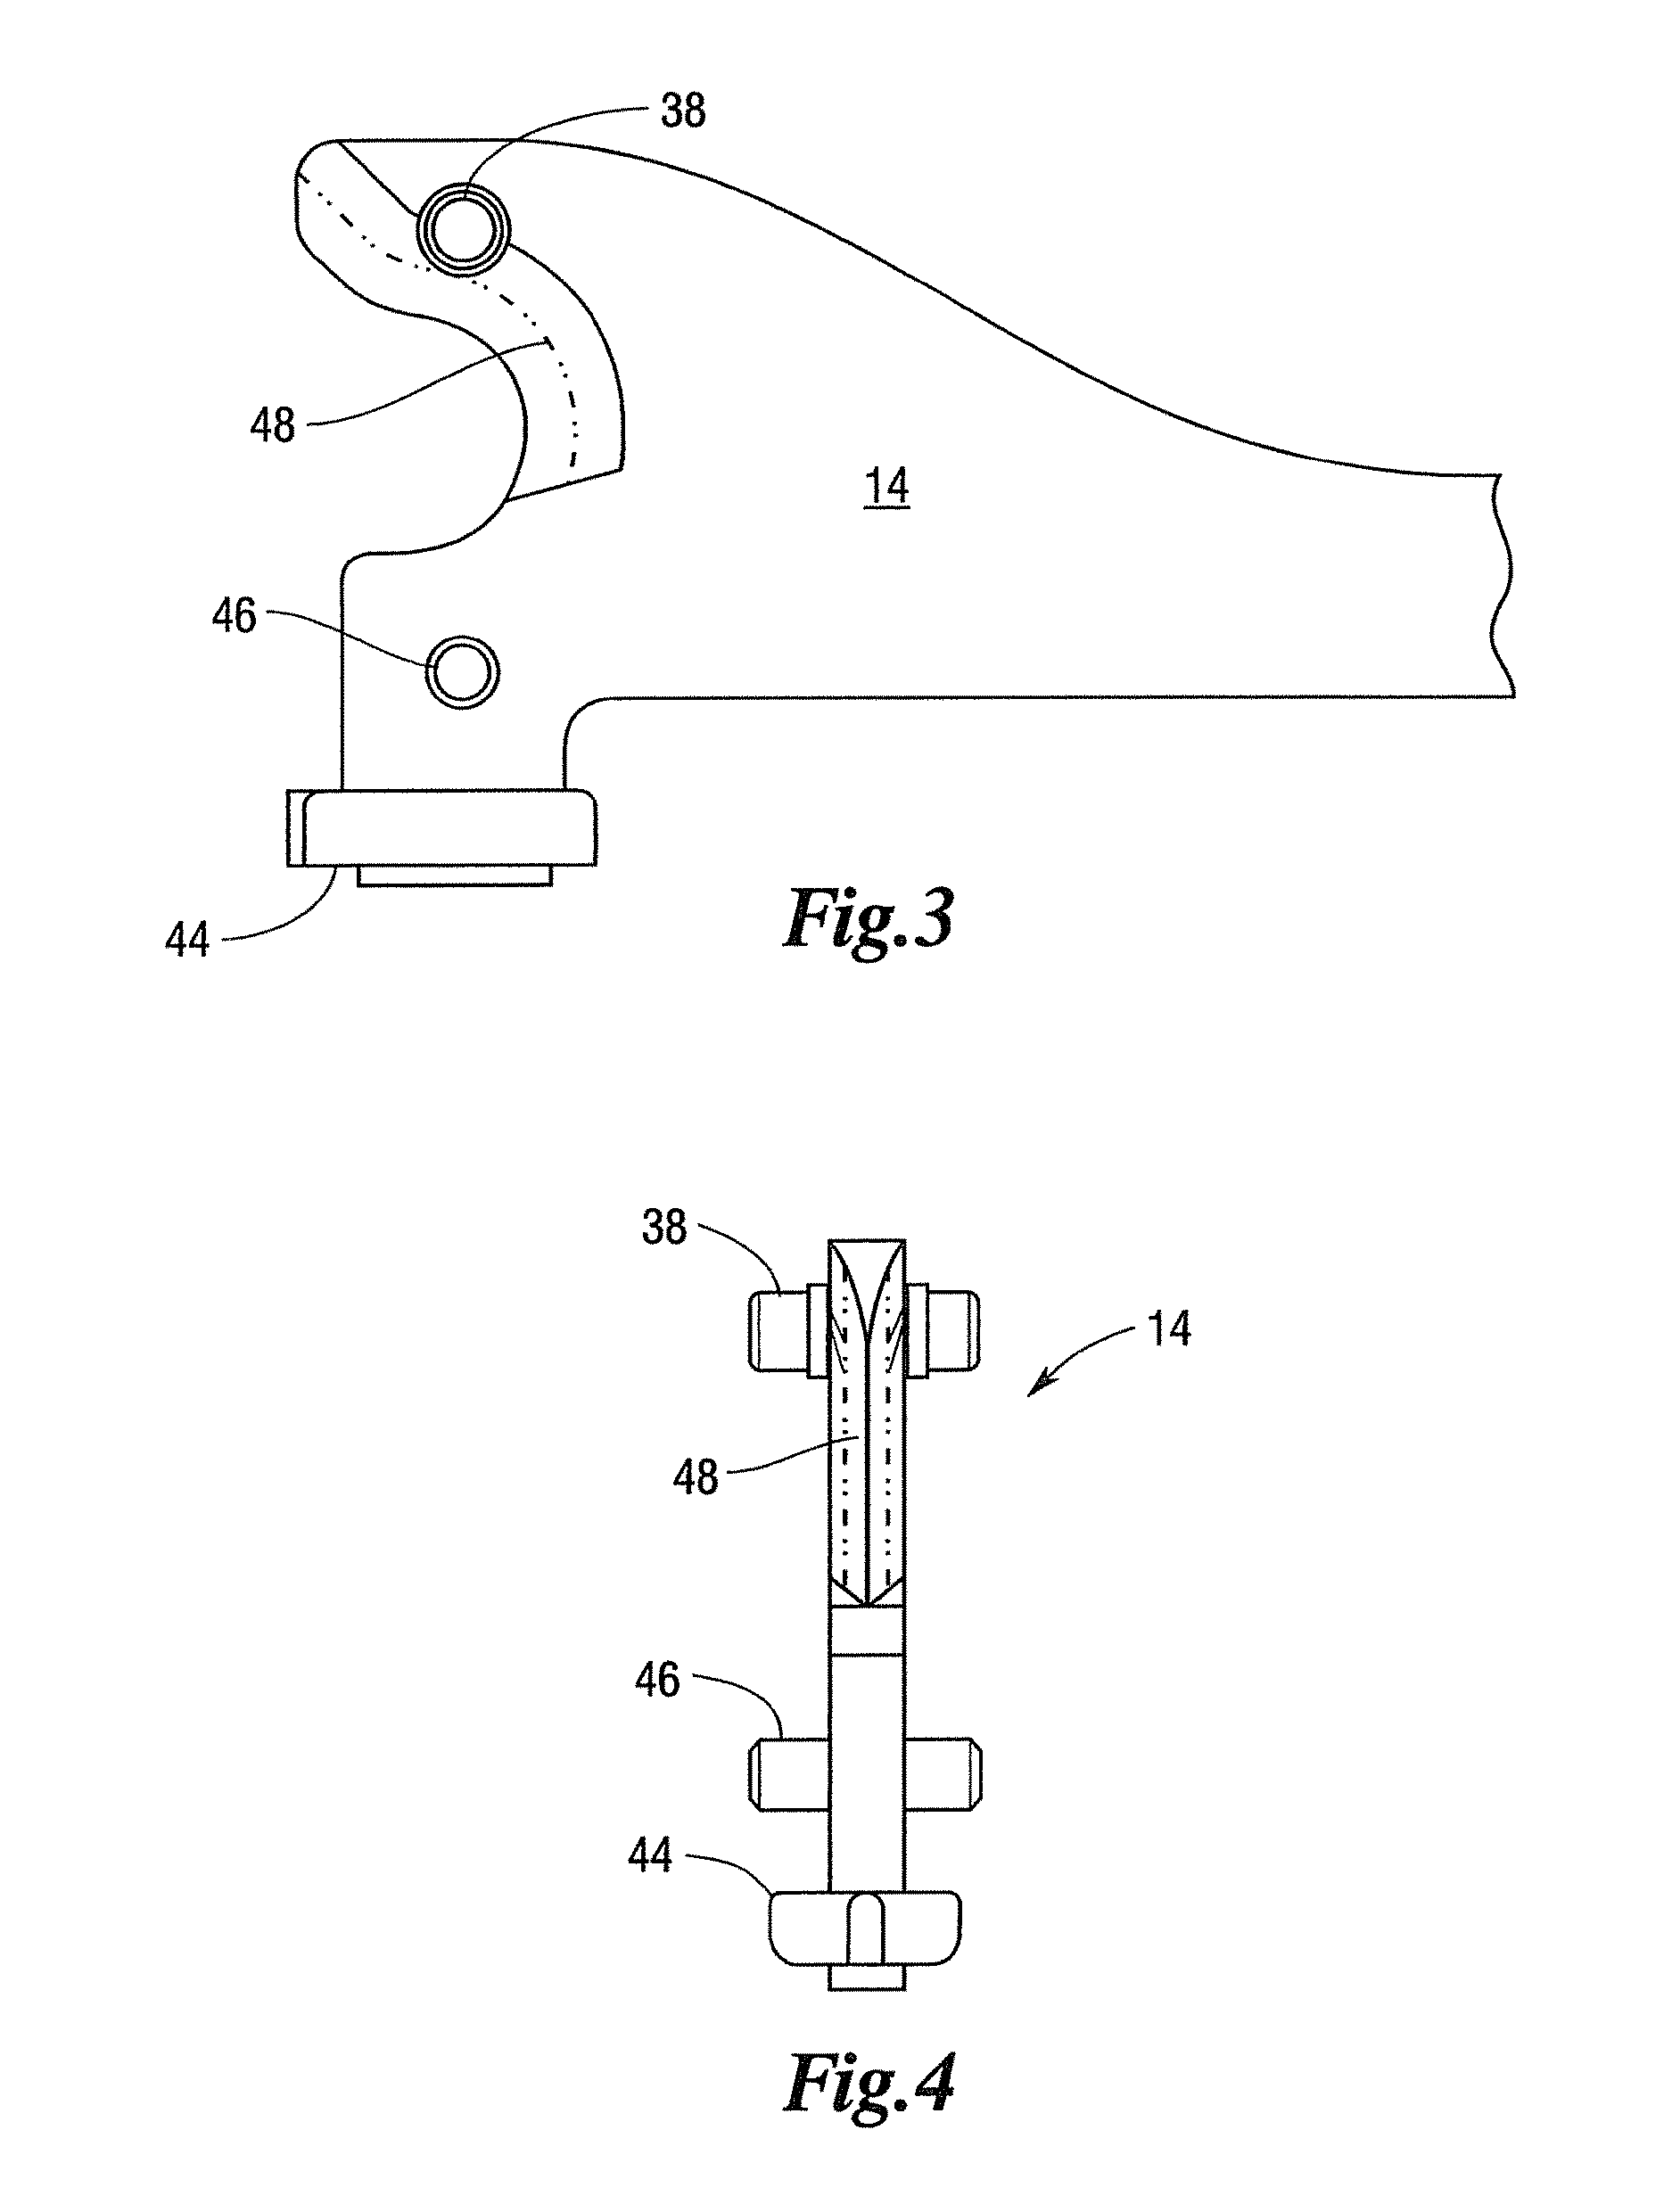 Us9848873b2 fastener cartridge assembly prising a driver and staple cavity arrangement patents